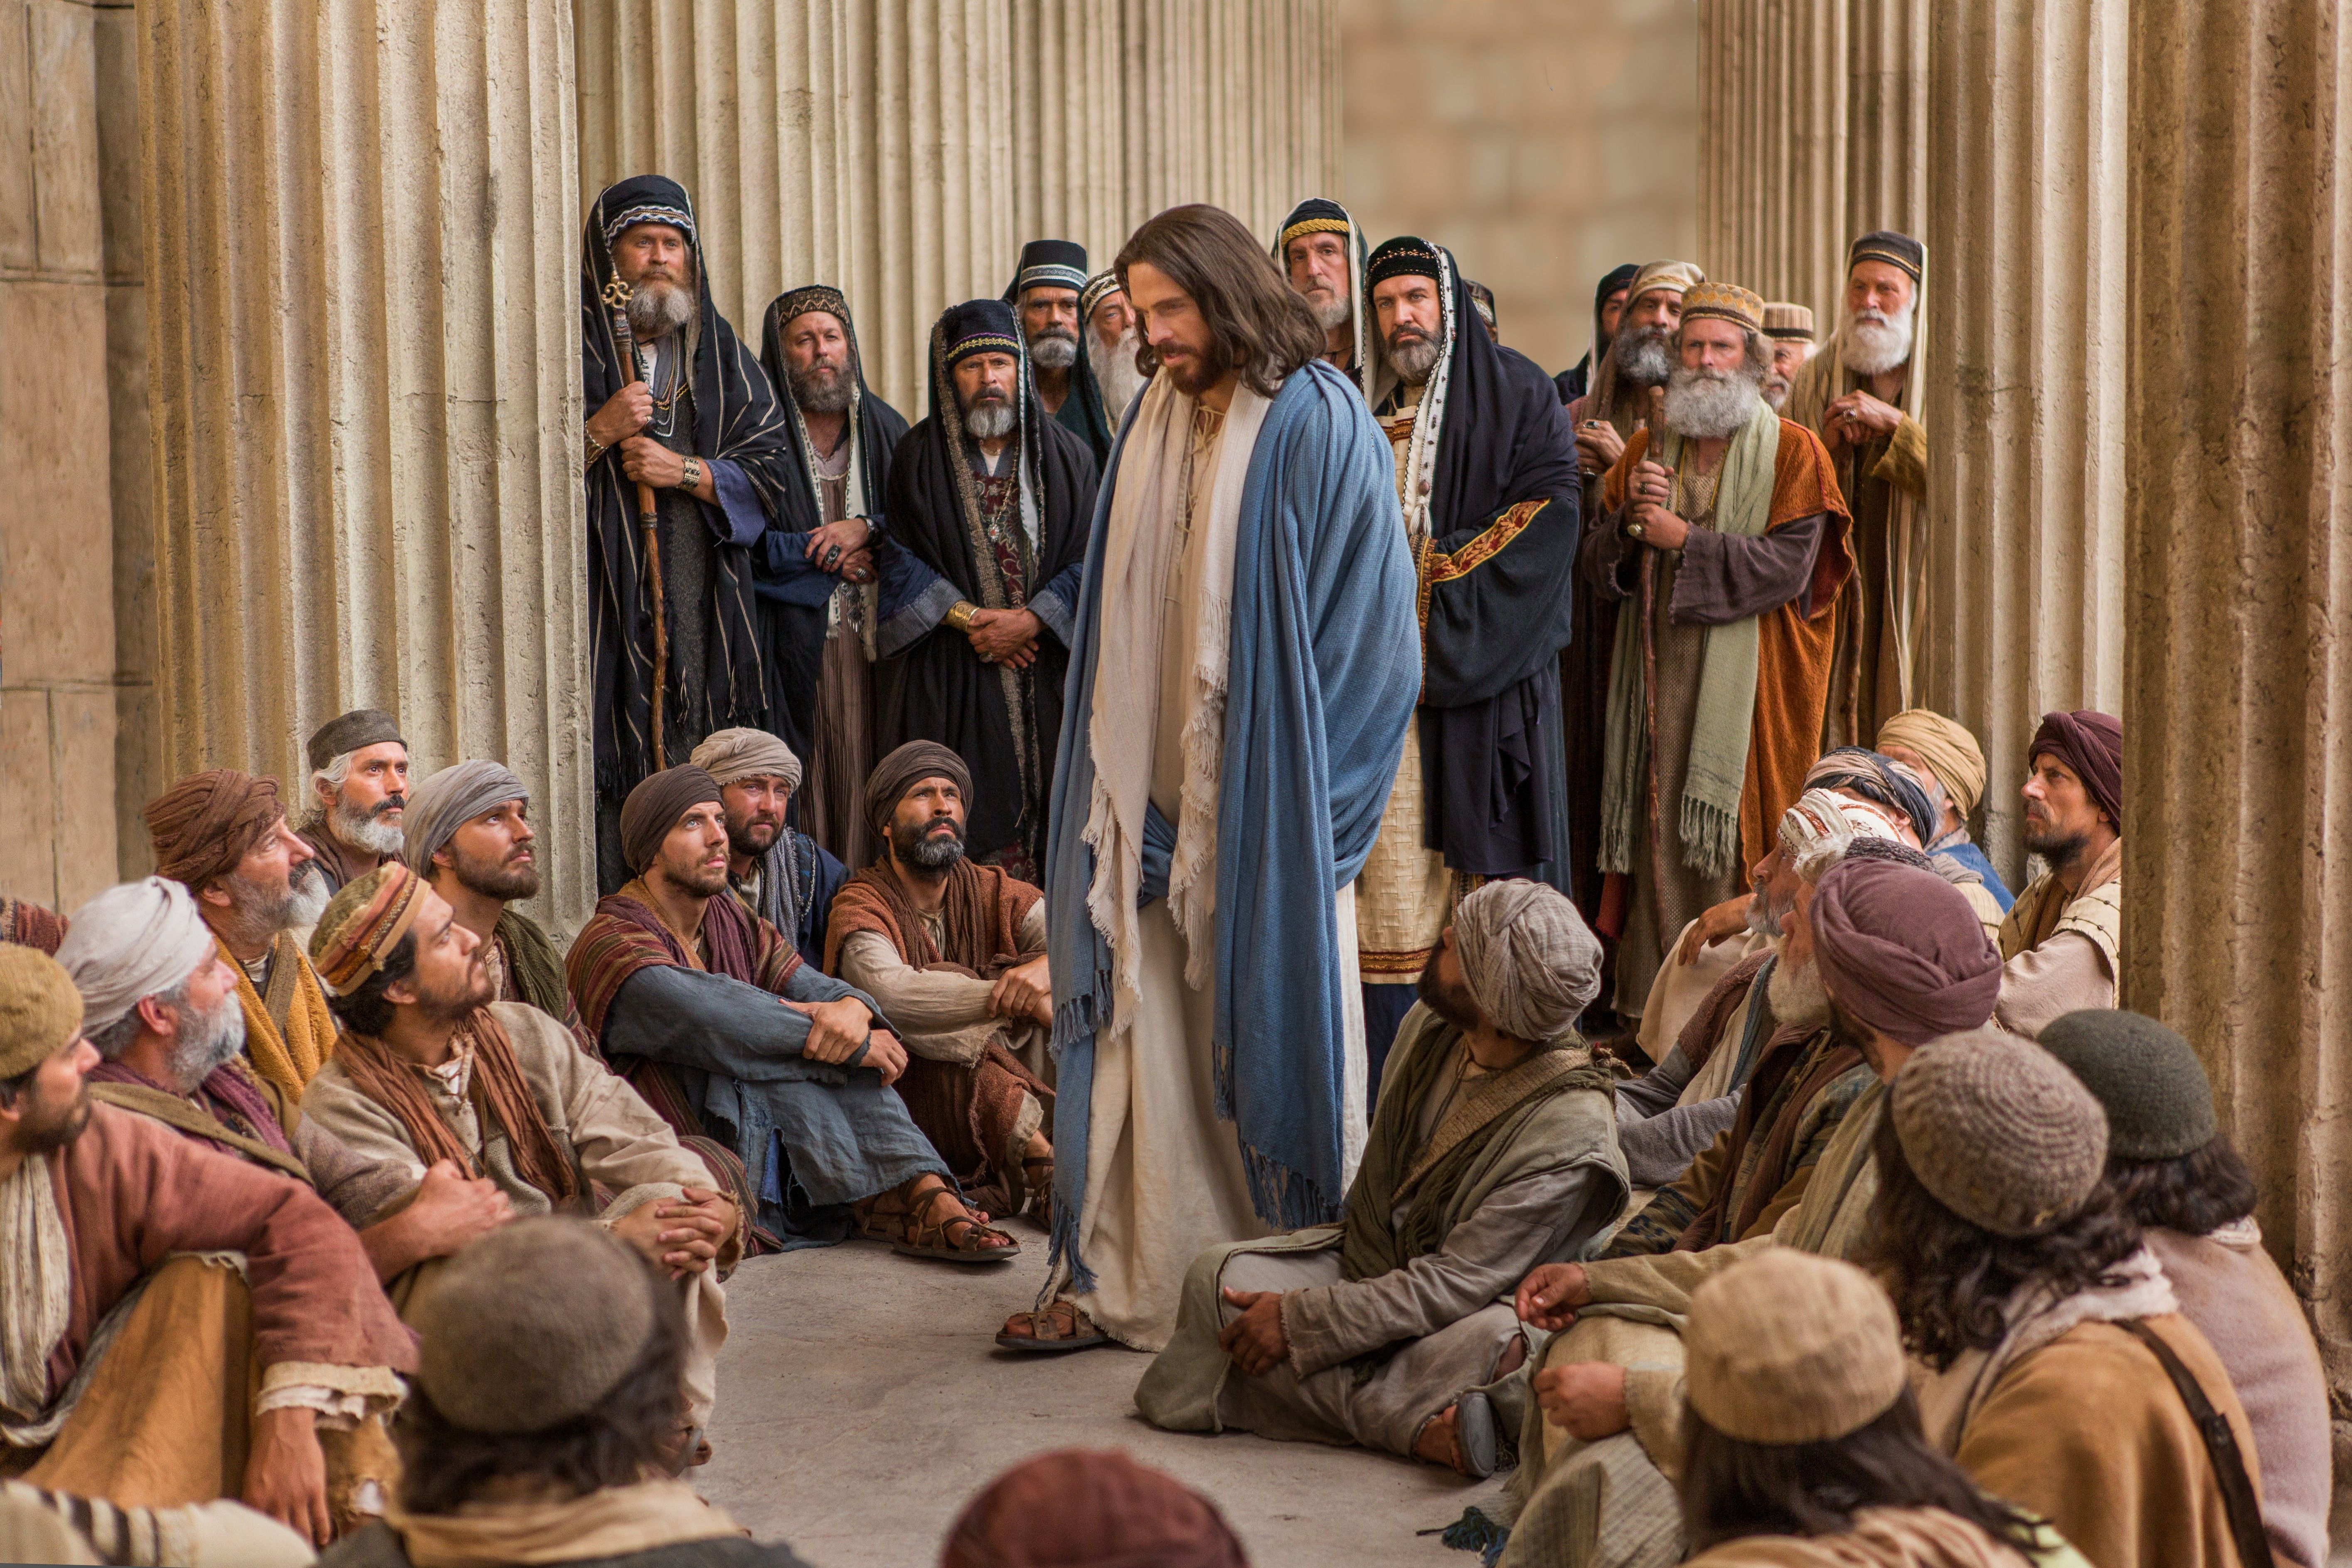 Jesus is questioned by Pharisees, and He teaches them.